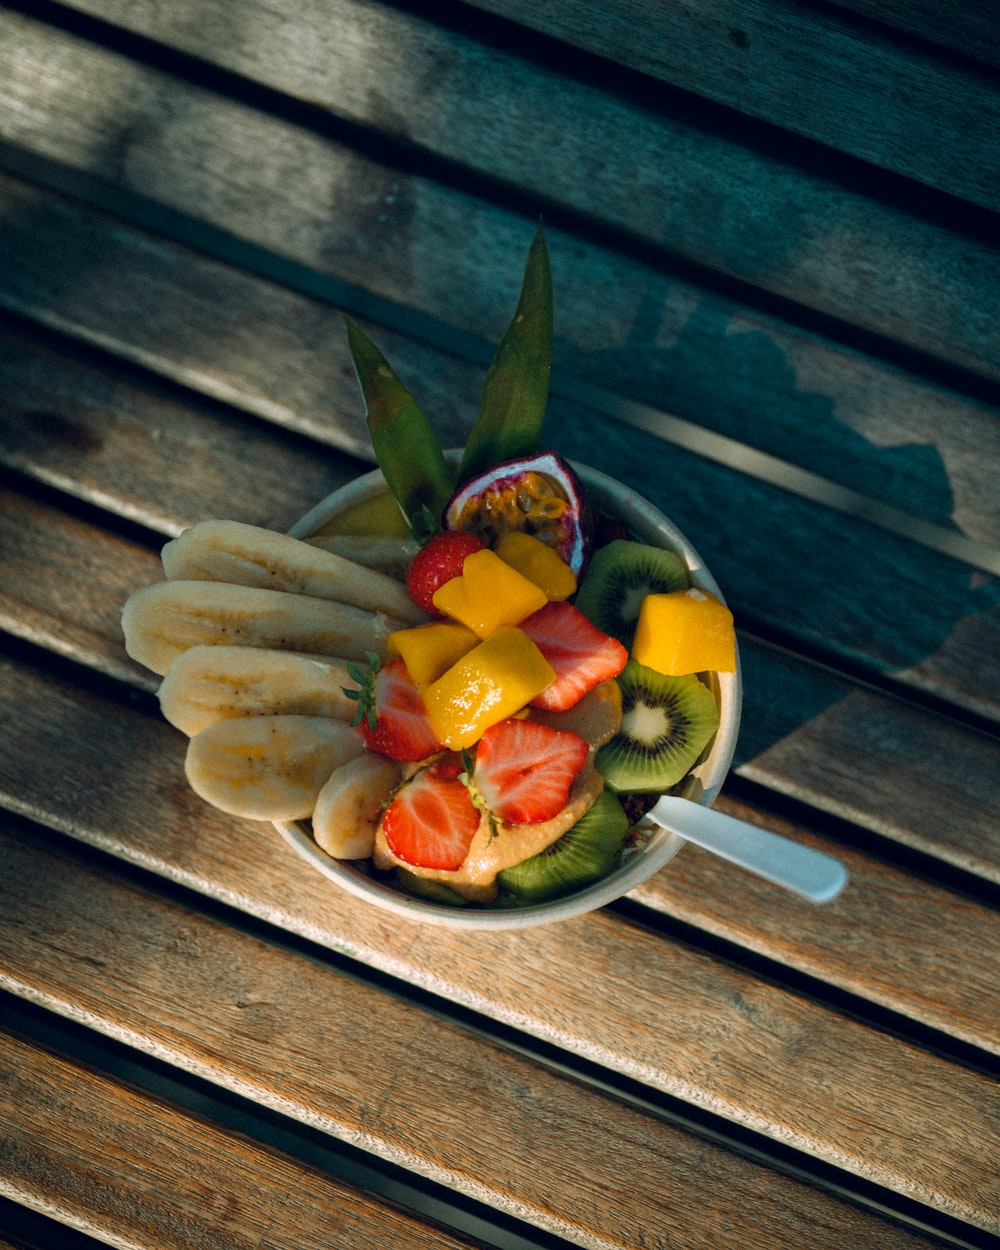 sliced fruits on brown wooden chopping board